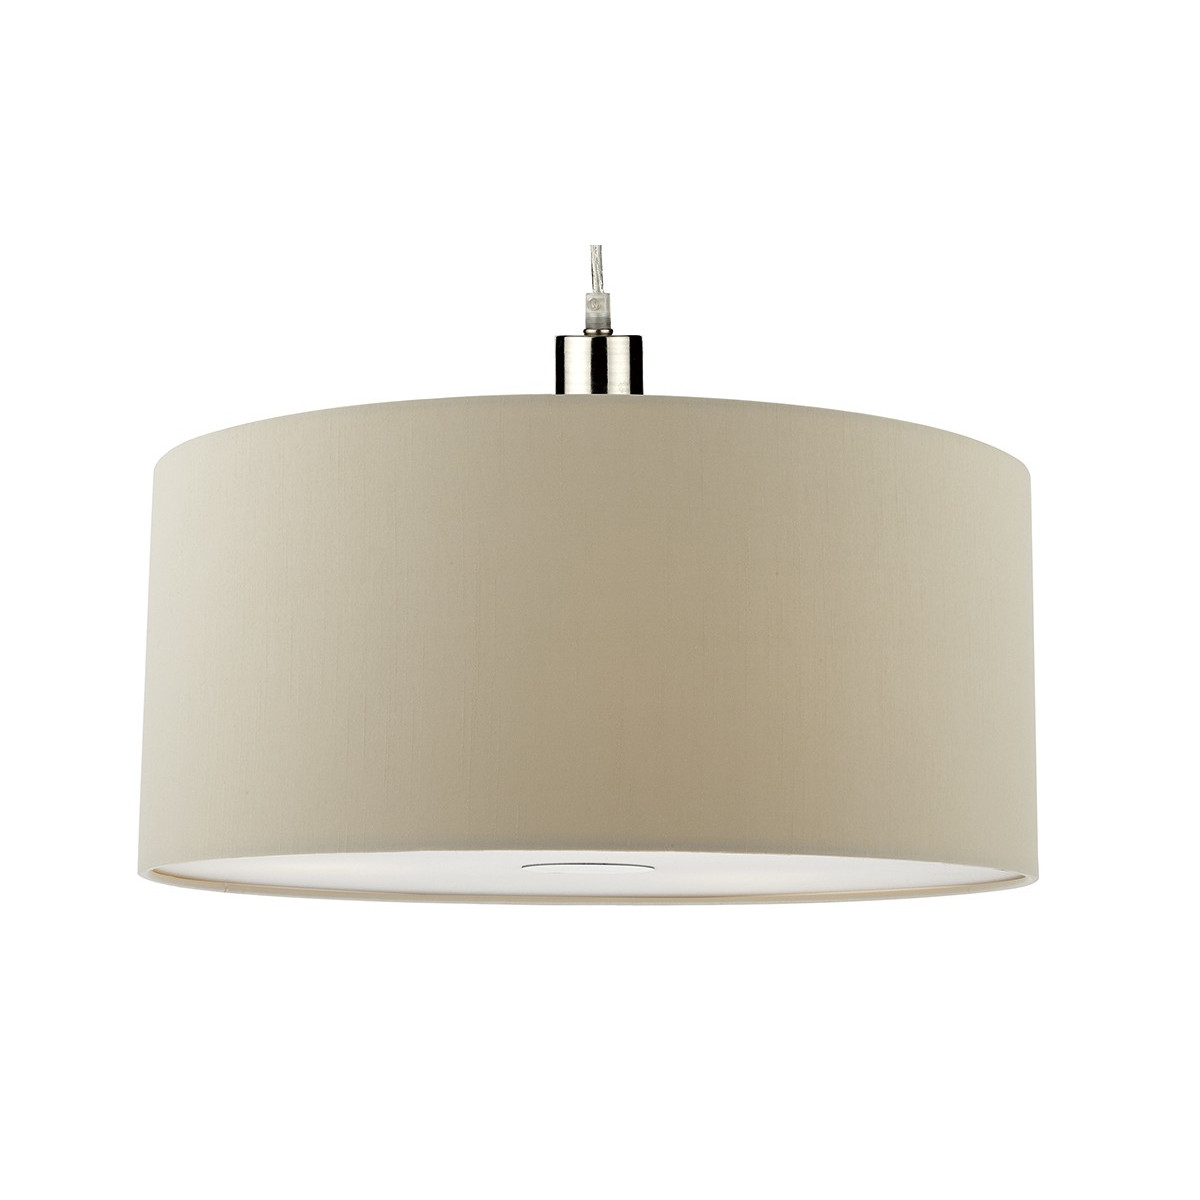 pendant linen shade light item cream with modern dcl product image zoom drum